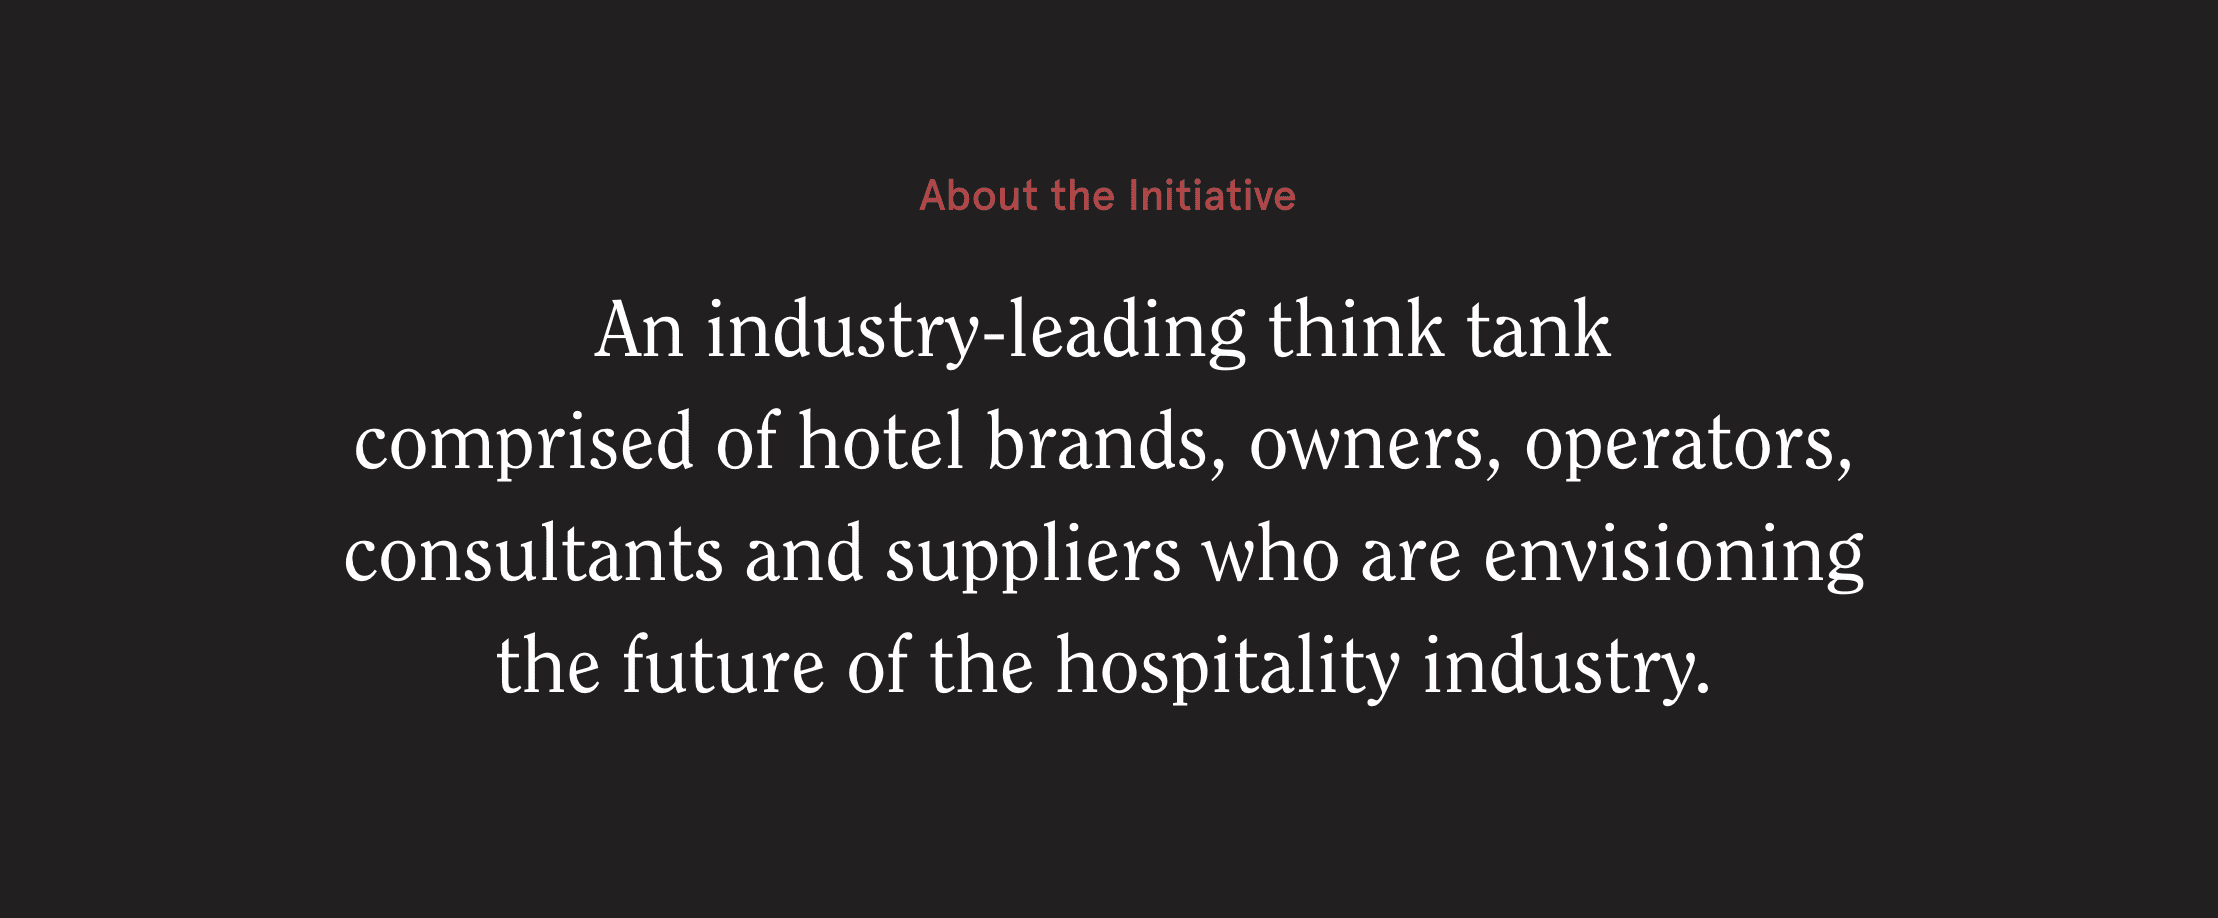 About the Hotel of Tomorrow